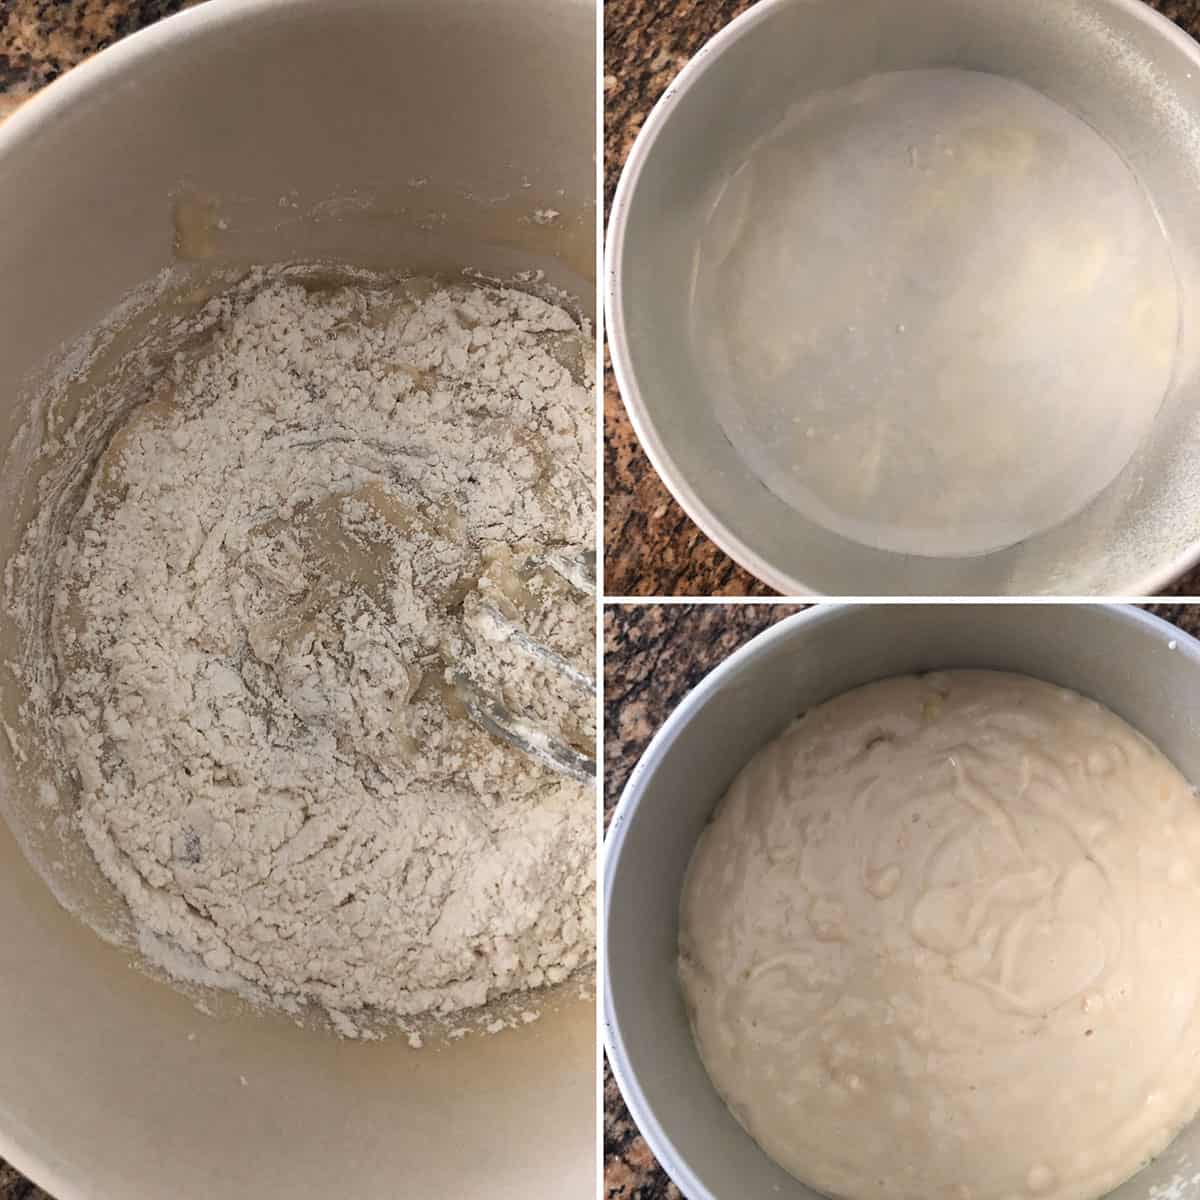 Wet and dry ingredients mixed in a mixing bowl. Poured into prepared baking pan